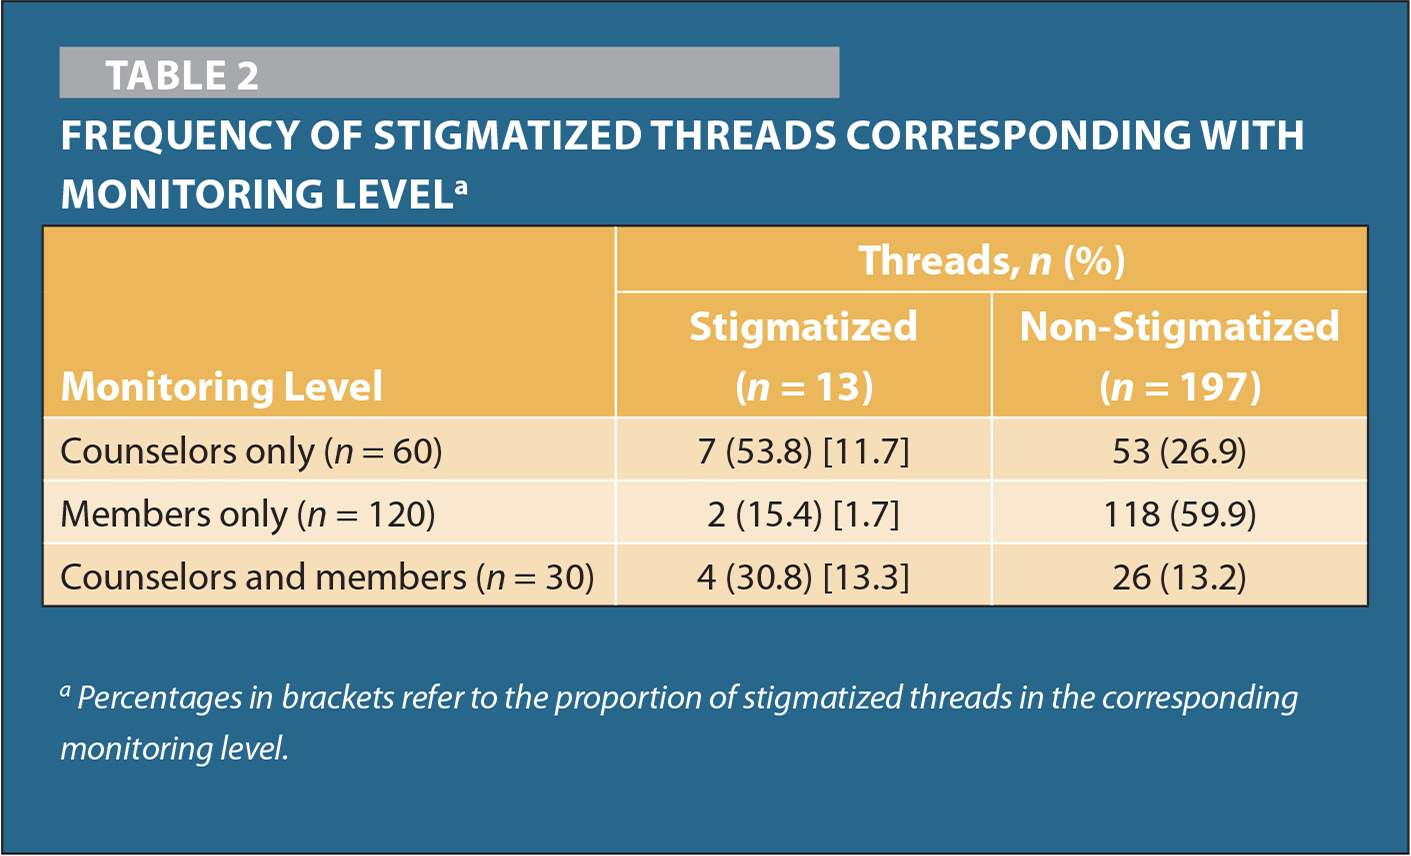 Frequency of Stigmatized Threads Corresponding with Monitoring Levela